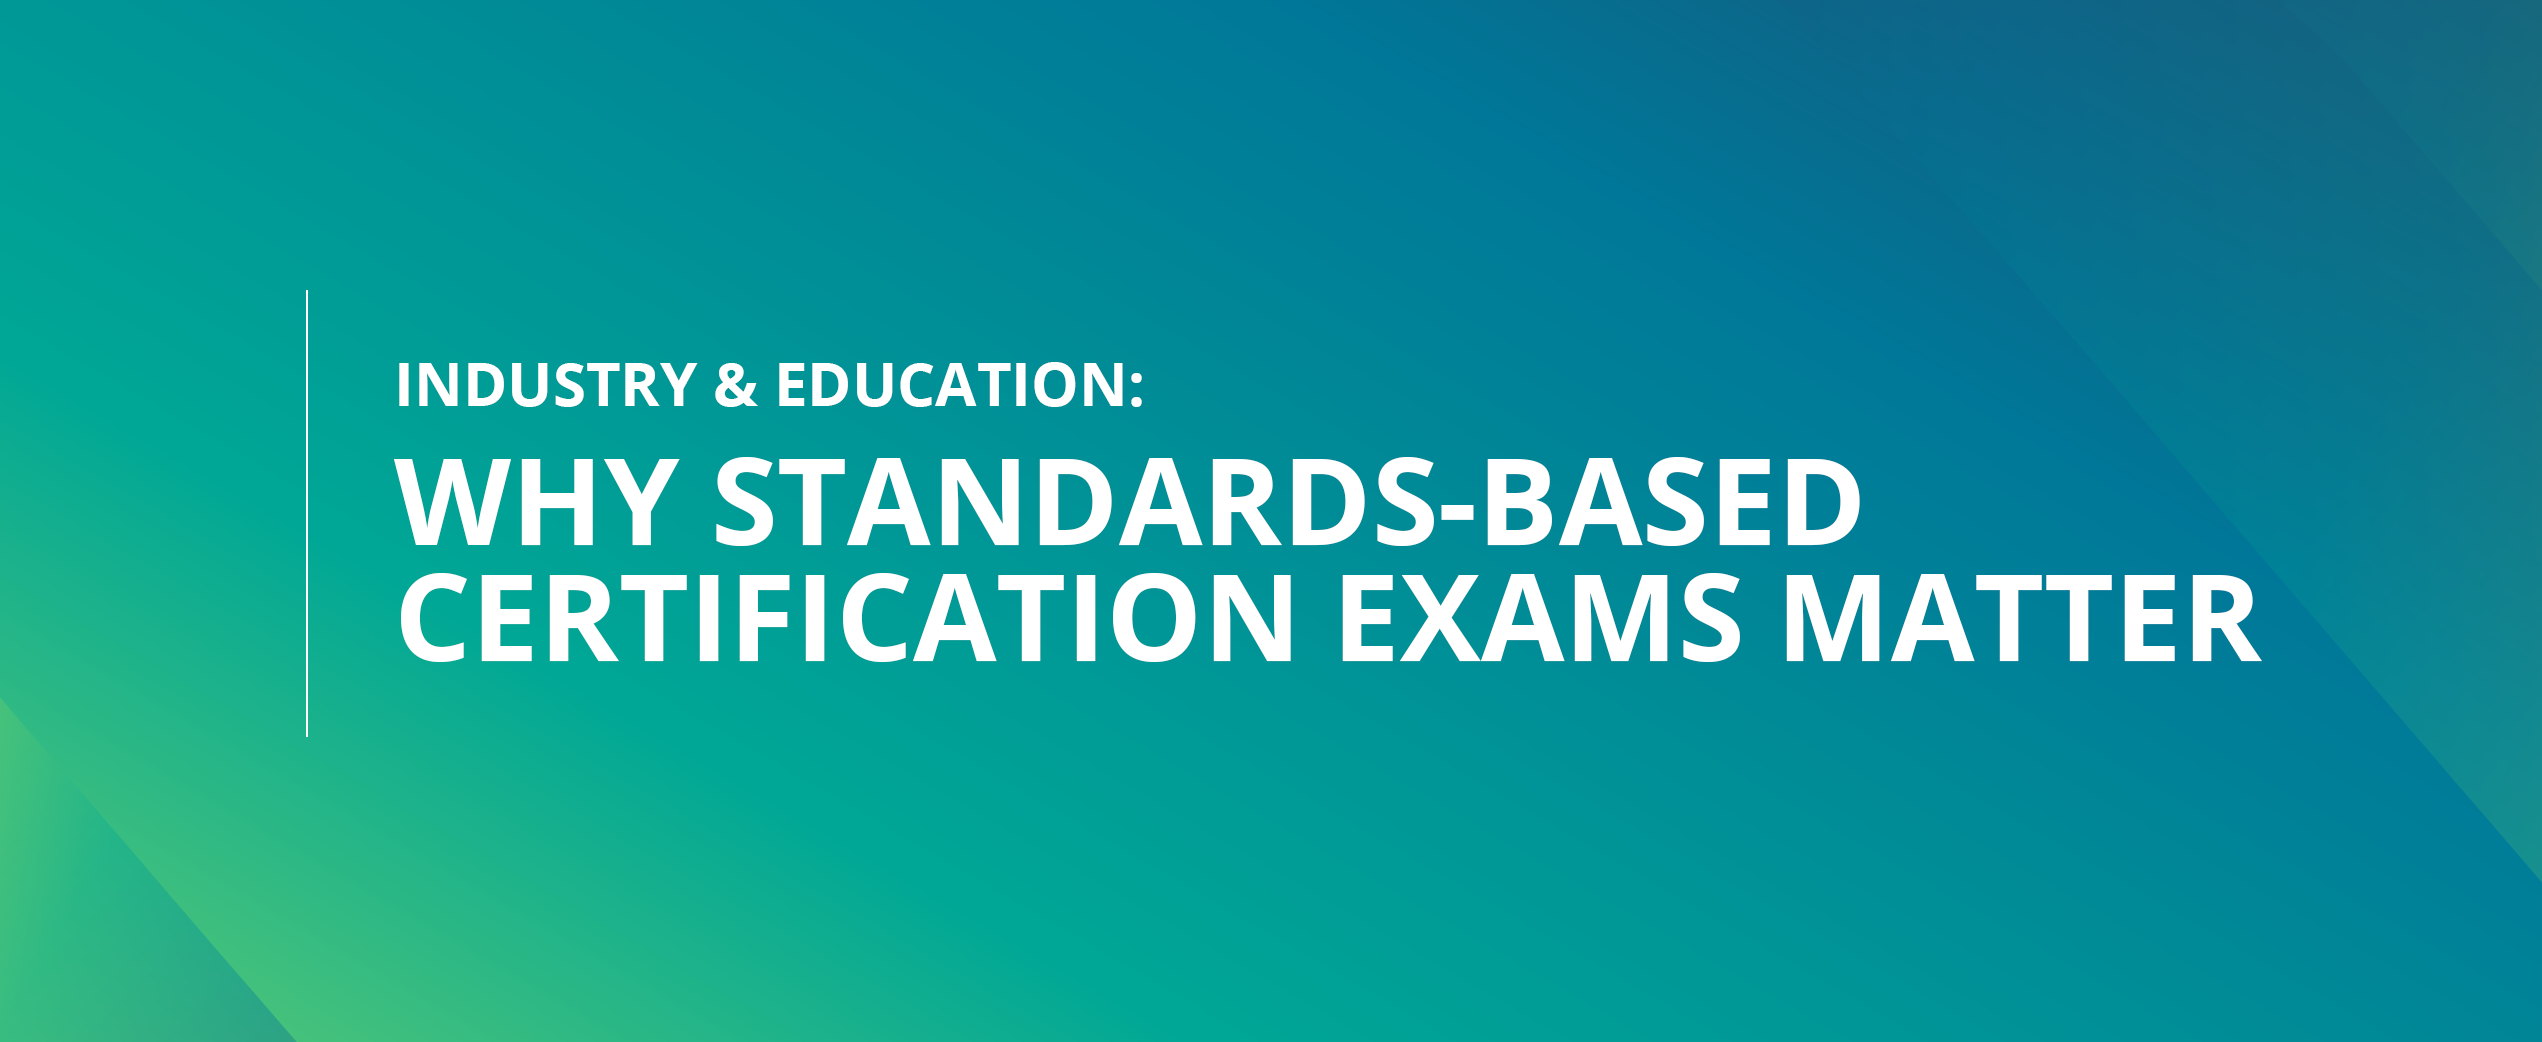 Industry & Education: Why Standards-Based Certification Exams Matter